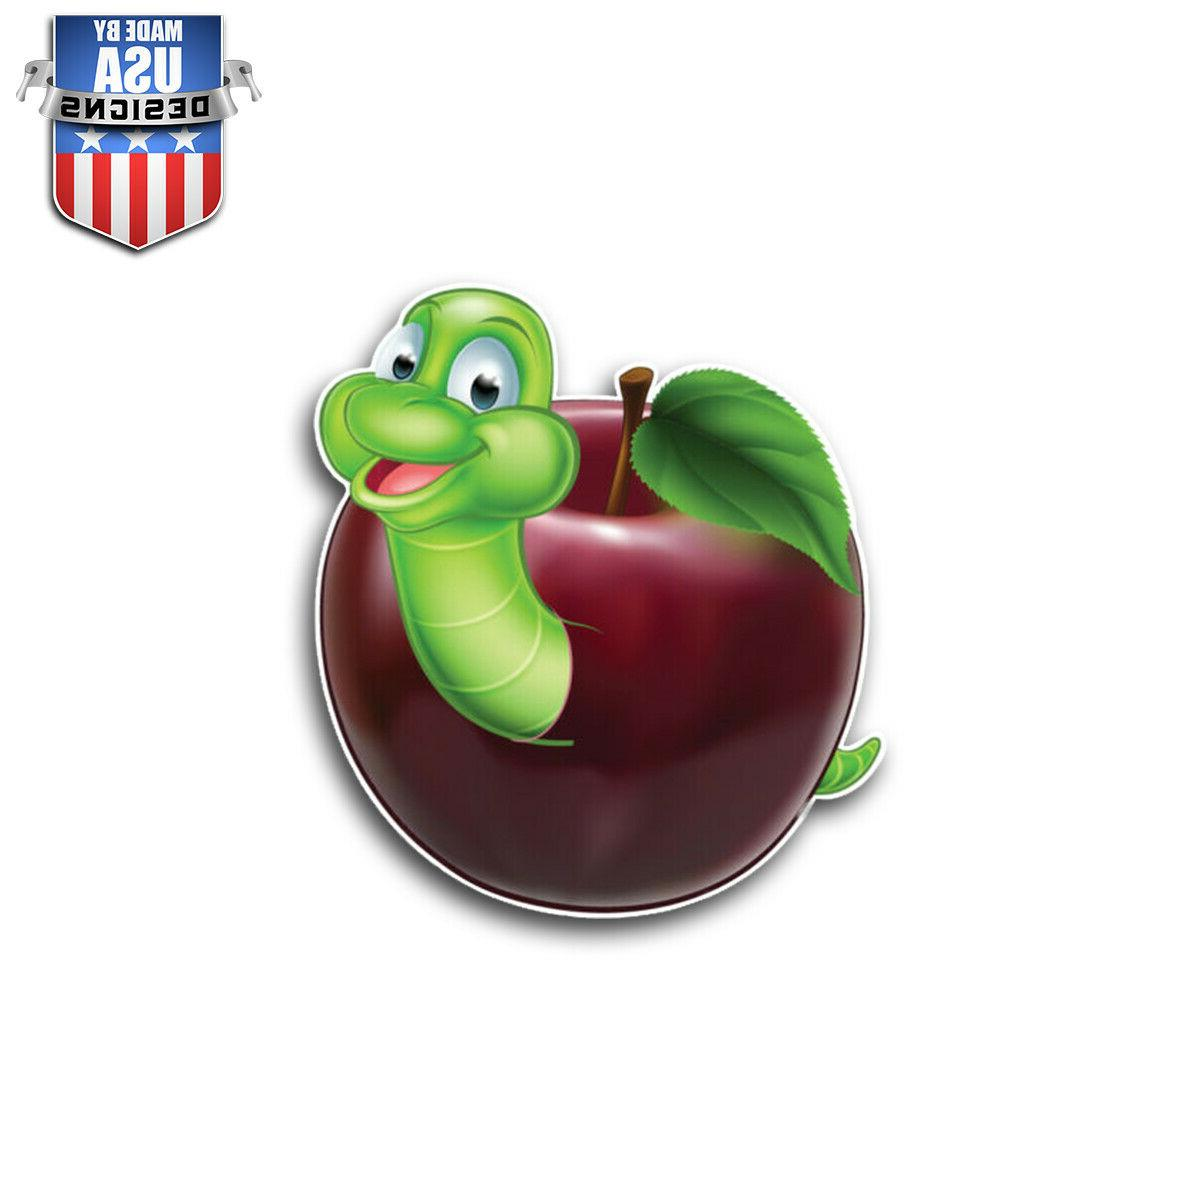 cute worm in apple sticker decal phone